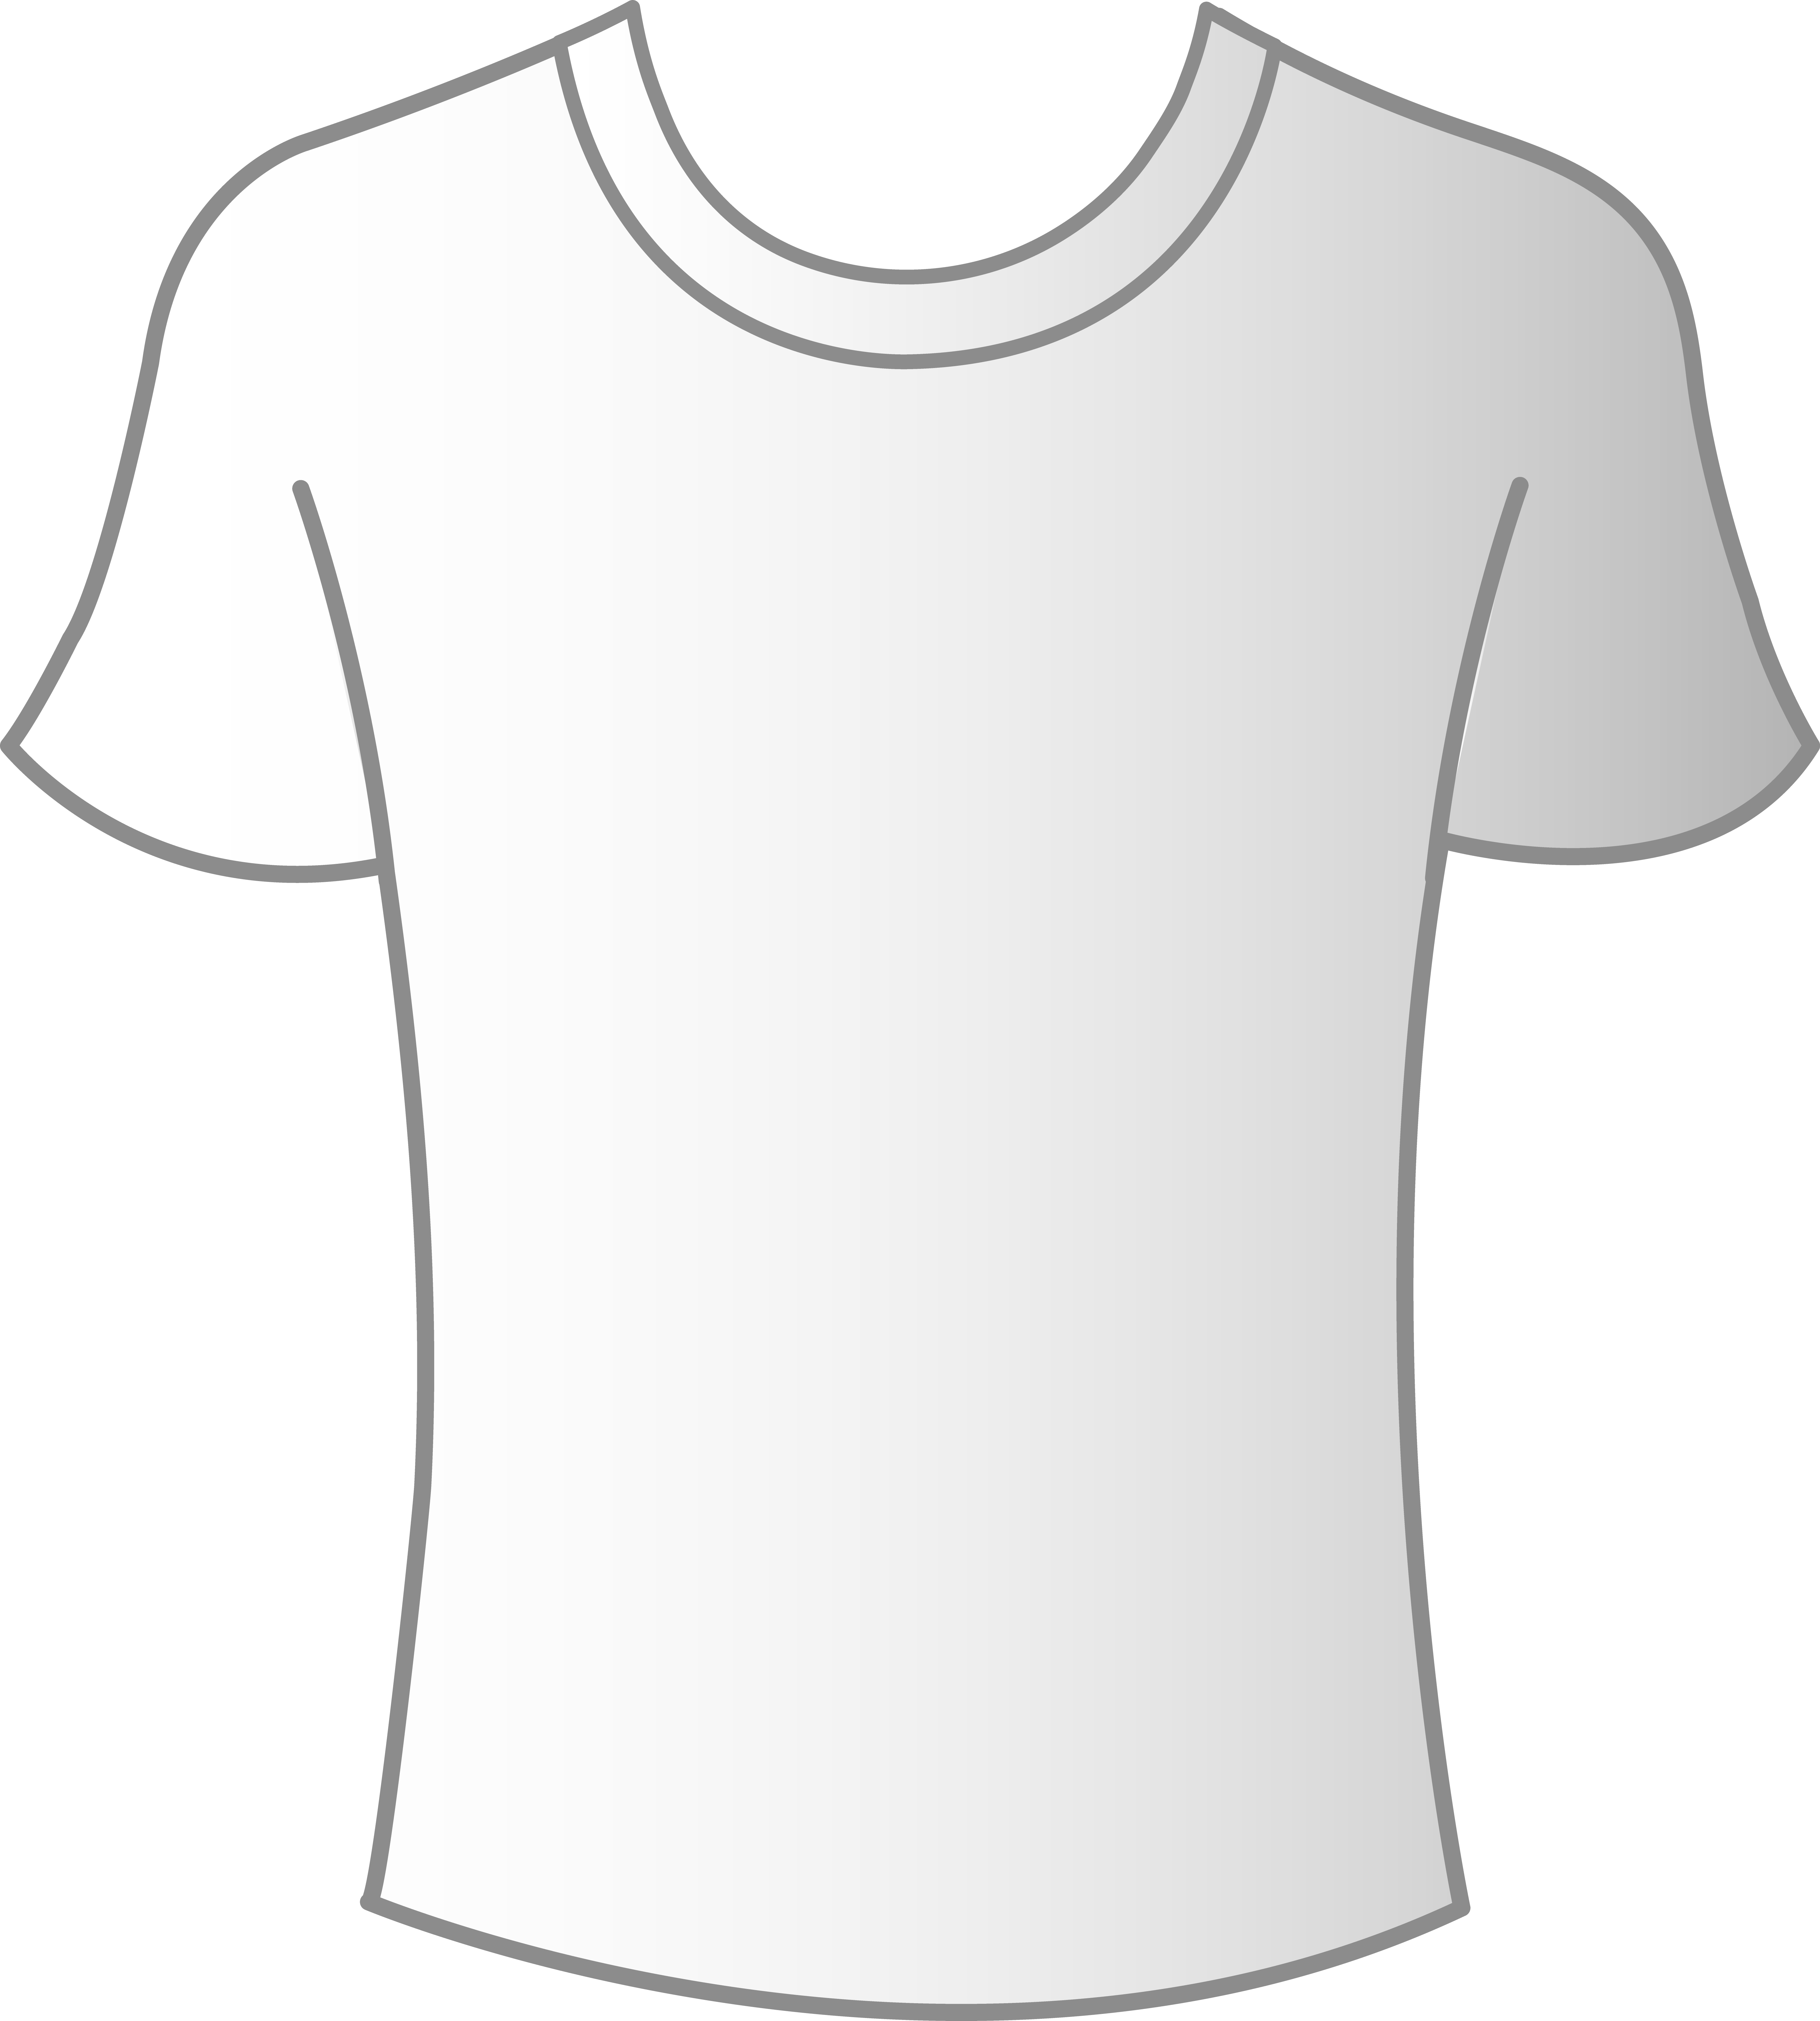 Plain white t shirt front and back clipart best for The best plain white t shirts